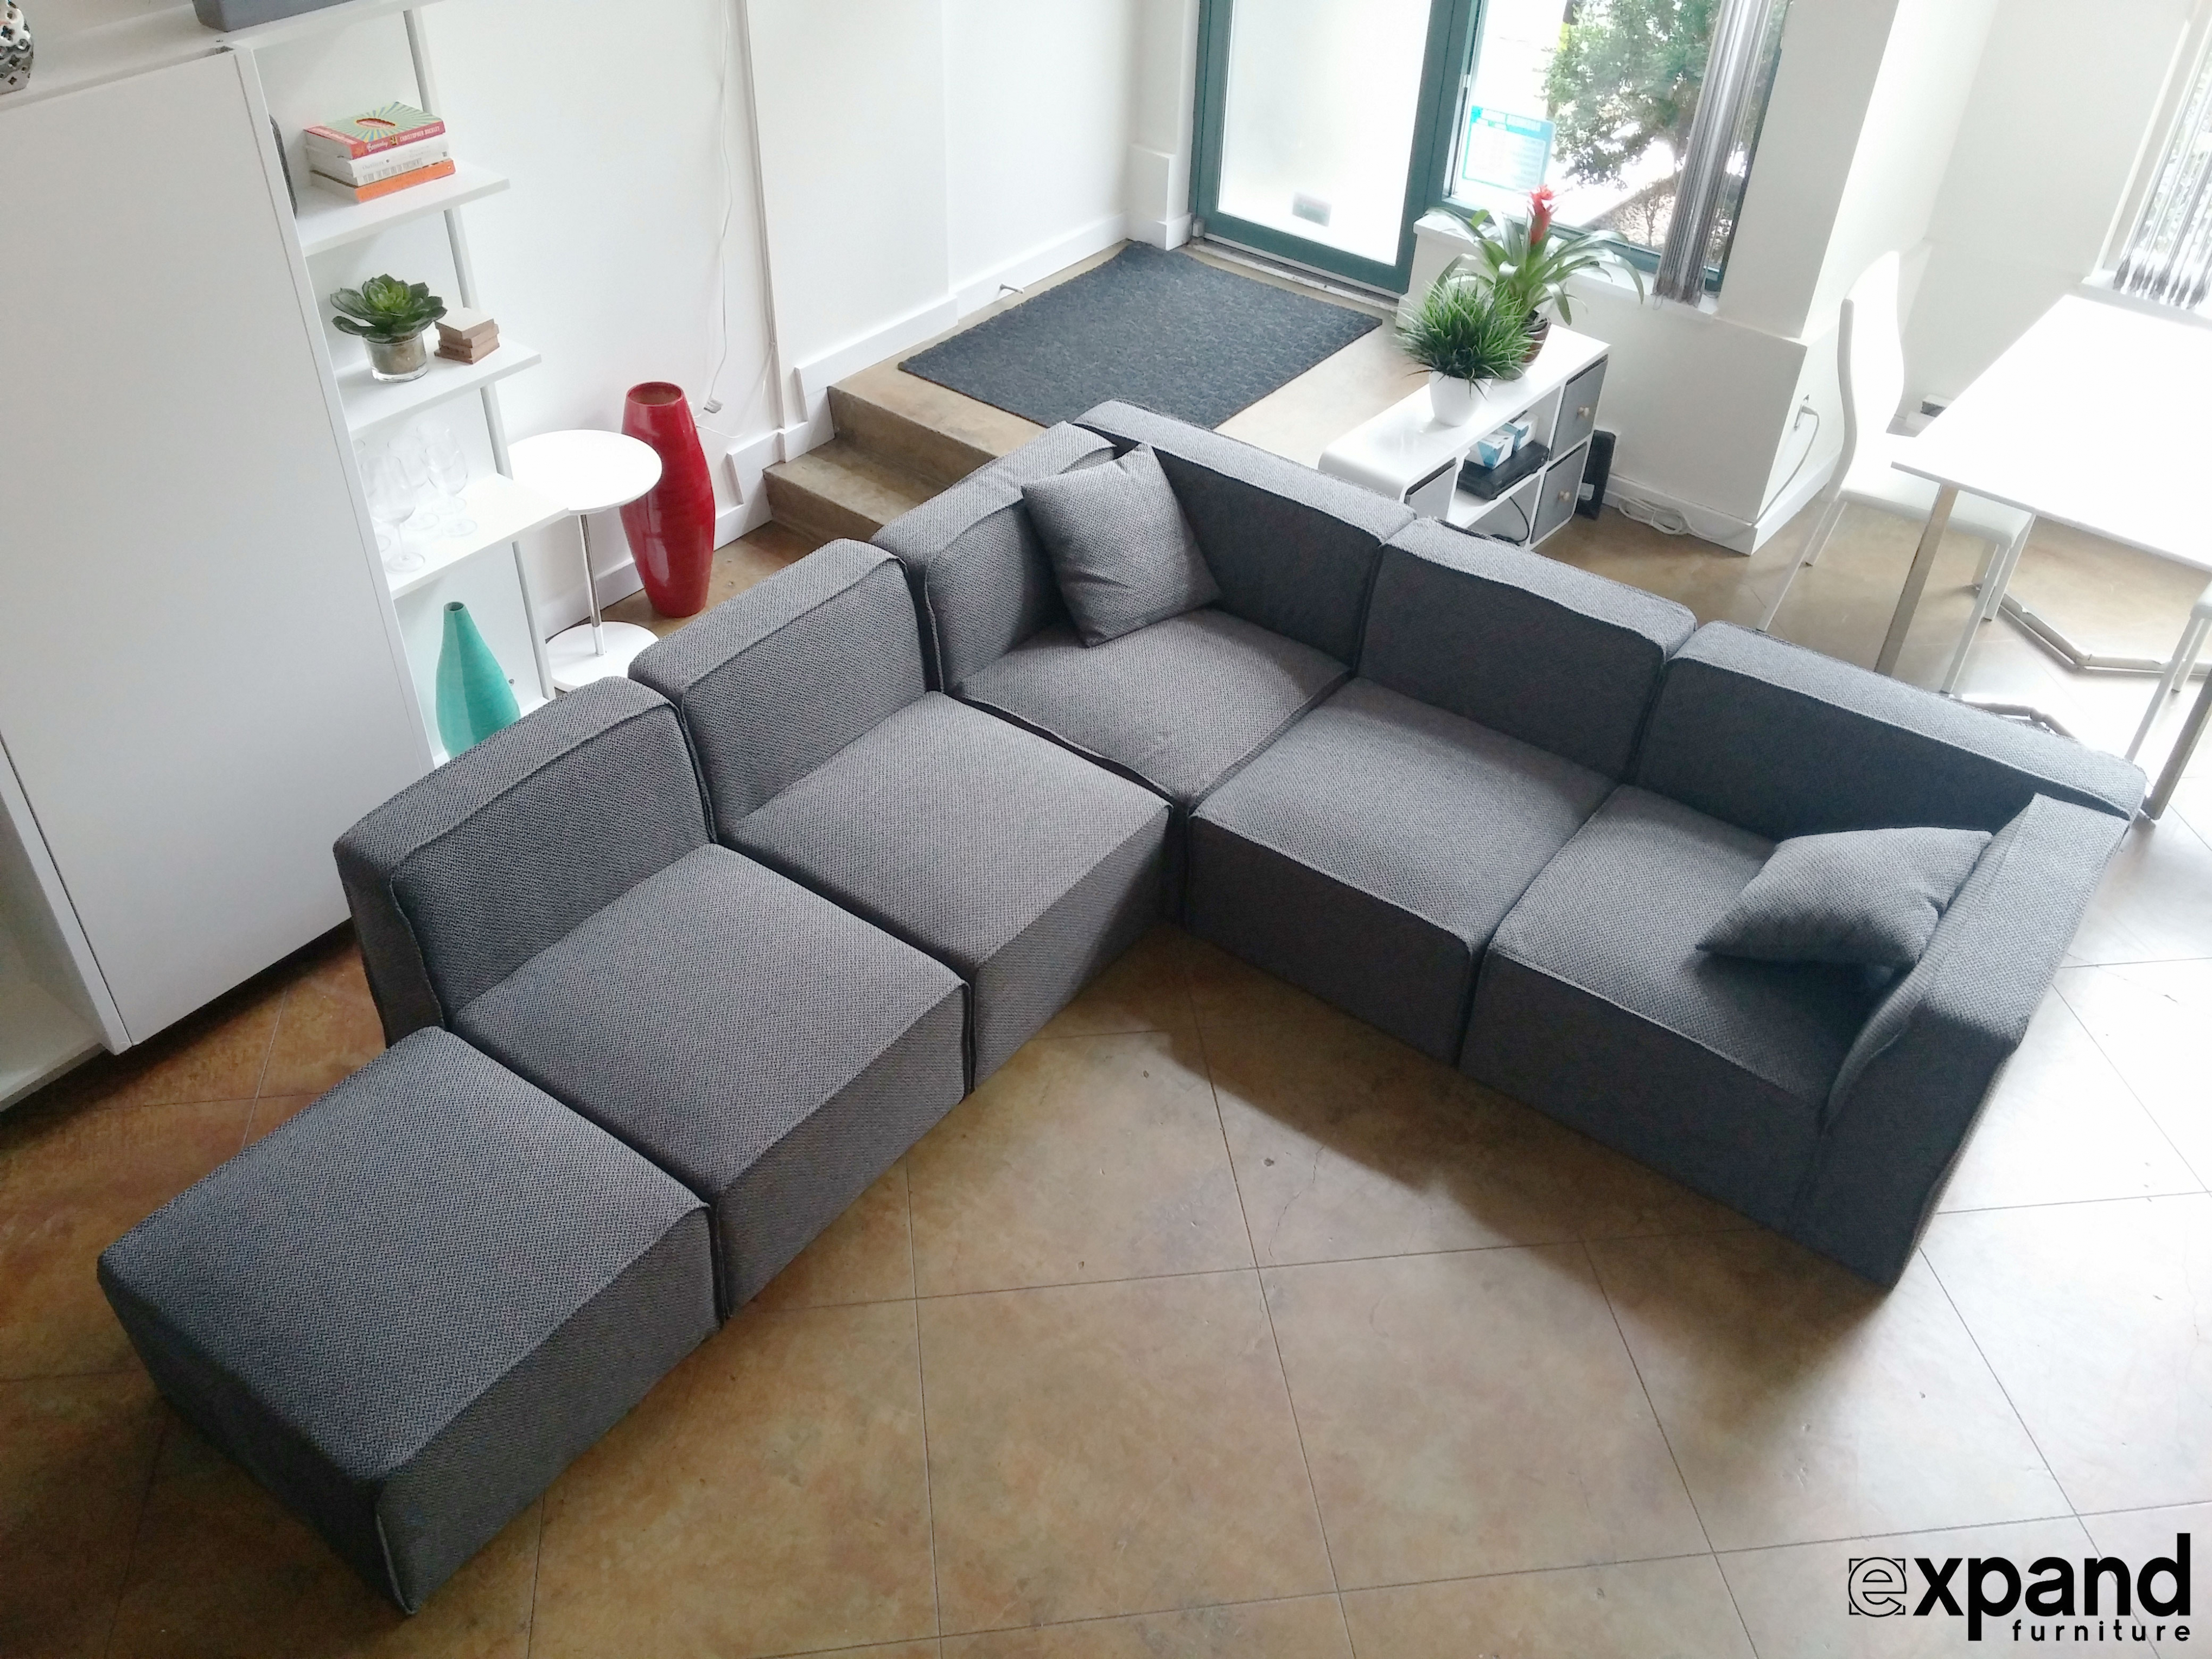 Immaculate Small Modular Sectional Sofa For Your Residence Decor: Living  Room : Modular Sofas For